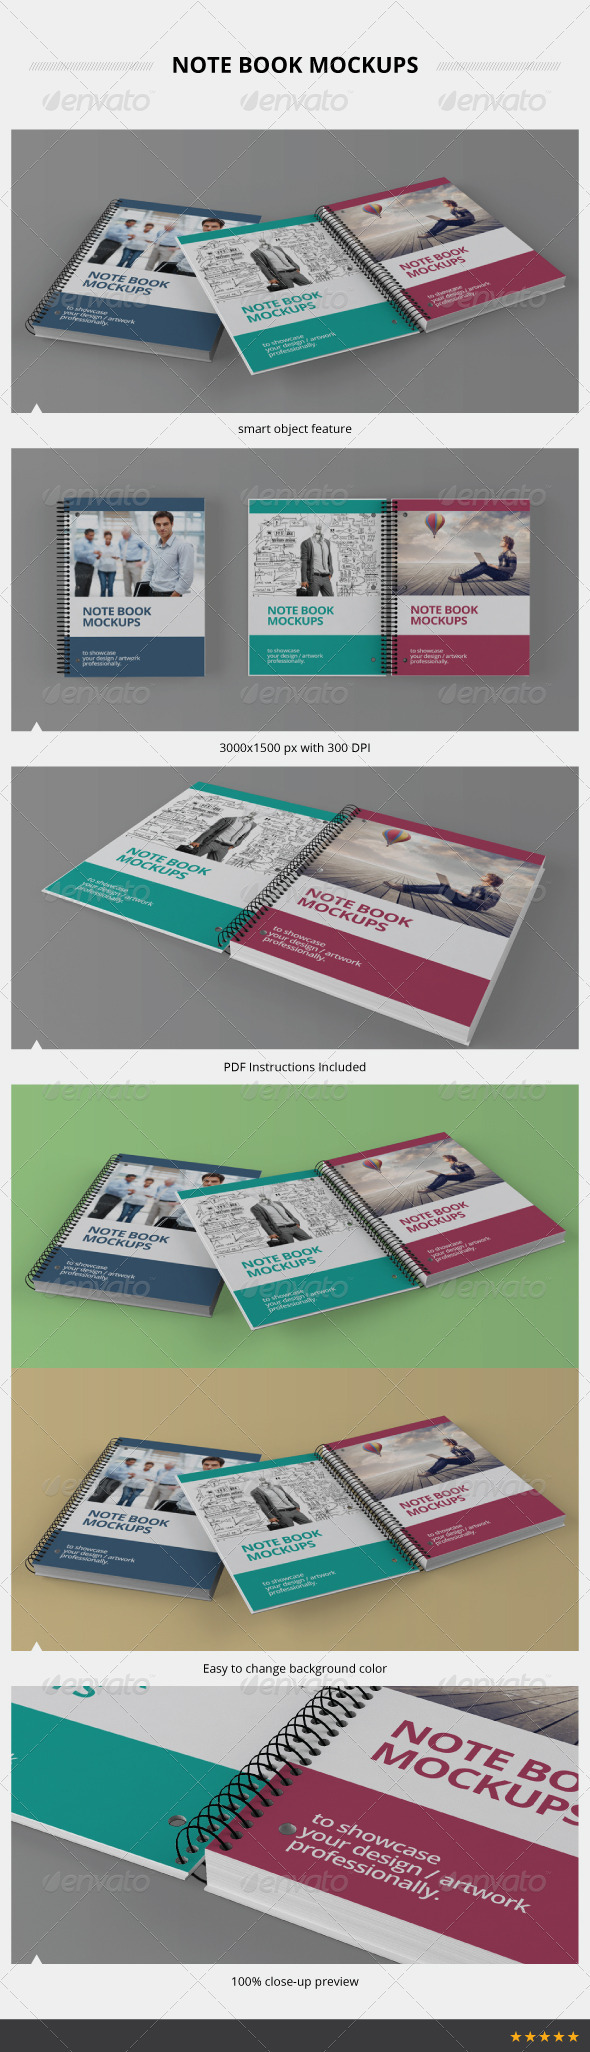 Note Book Mockups - Books Print